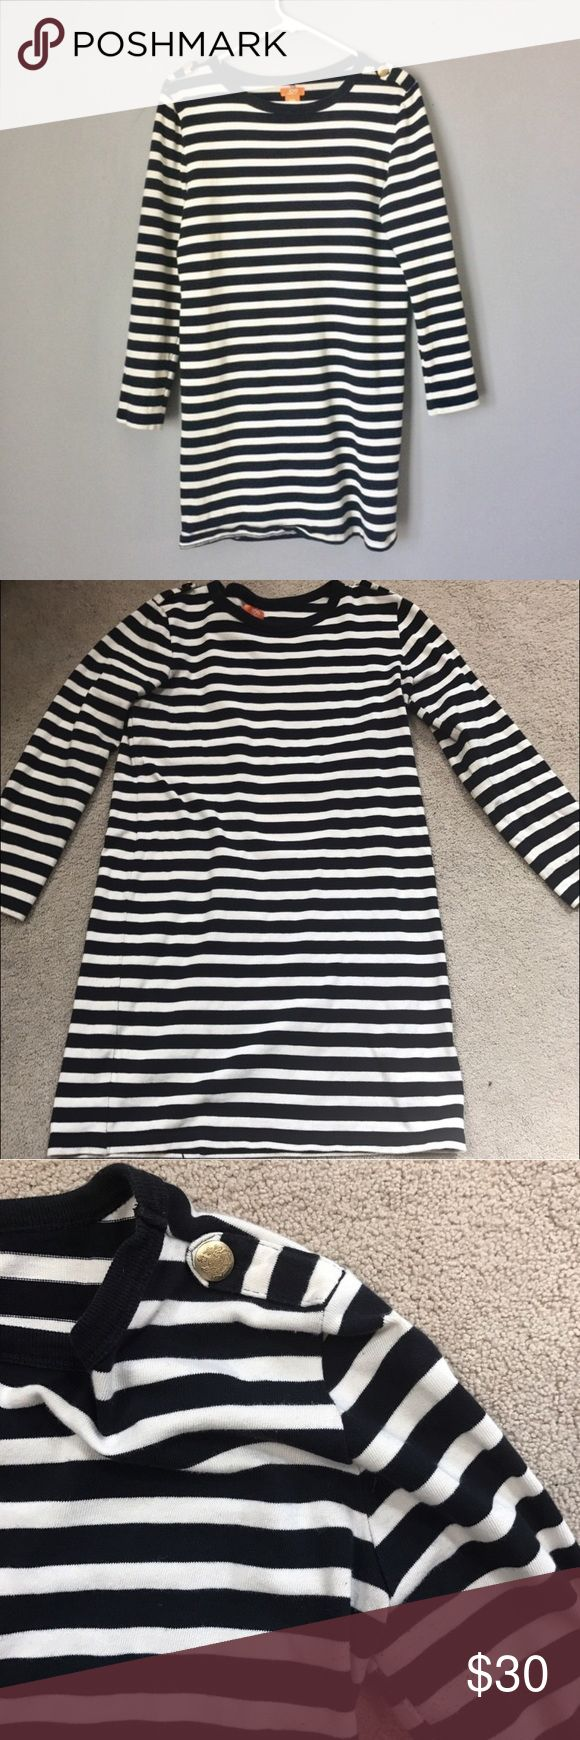 SUBMIT ANY OFFER! Joe Fresh Blue Striped Dress Great Condition! Shows little to no wear Joe Fresh Dresses